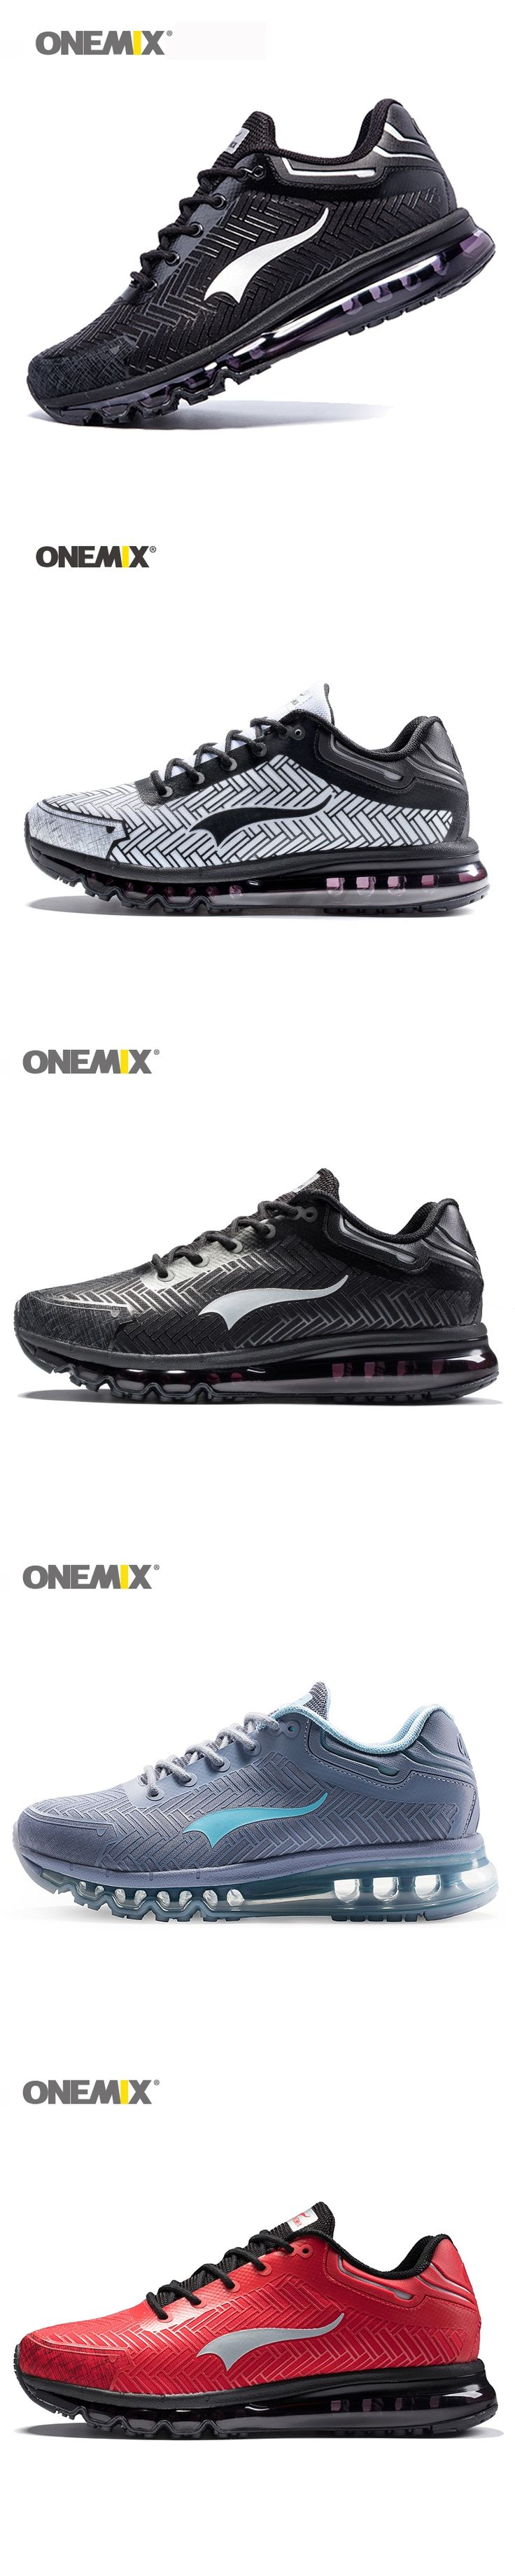 Onemix men's running shoes light jogging shoes outdoor walking shoes good sports sneakers black adult athletic trekking sneakers